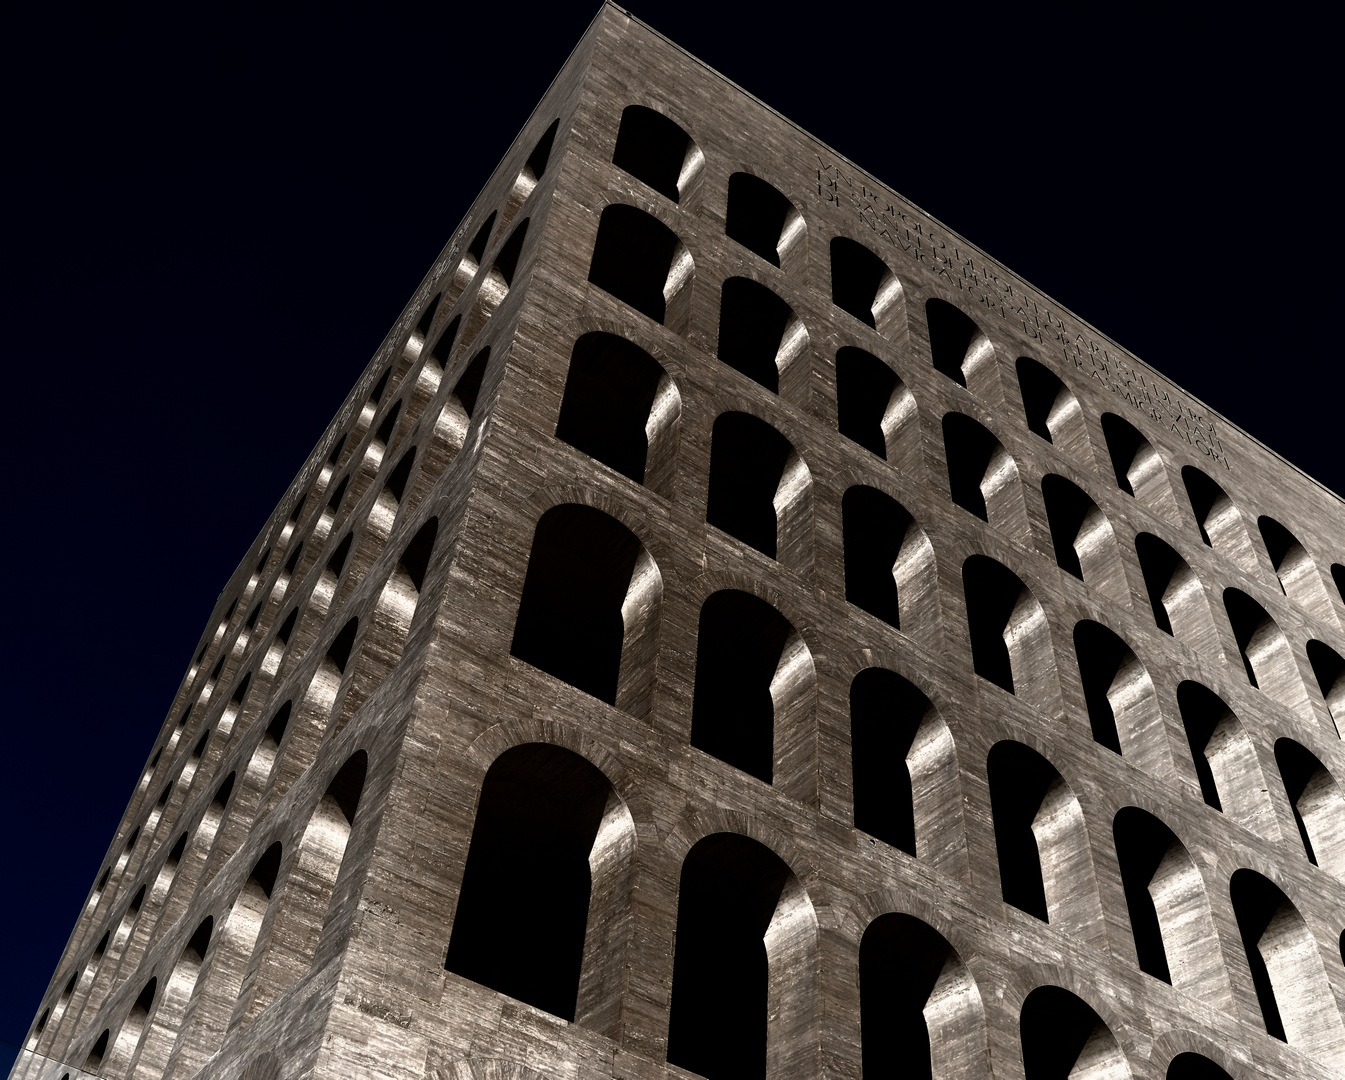 Rome - new vision of old building by Bruno Mariti